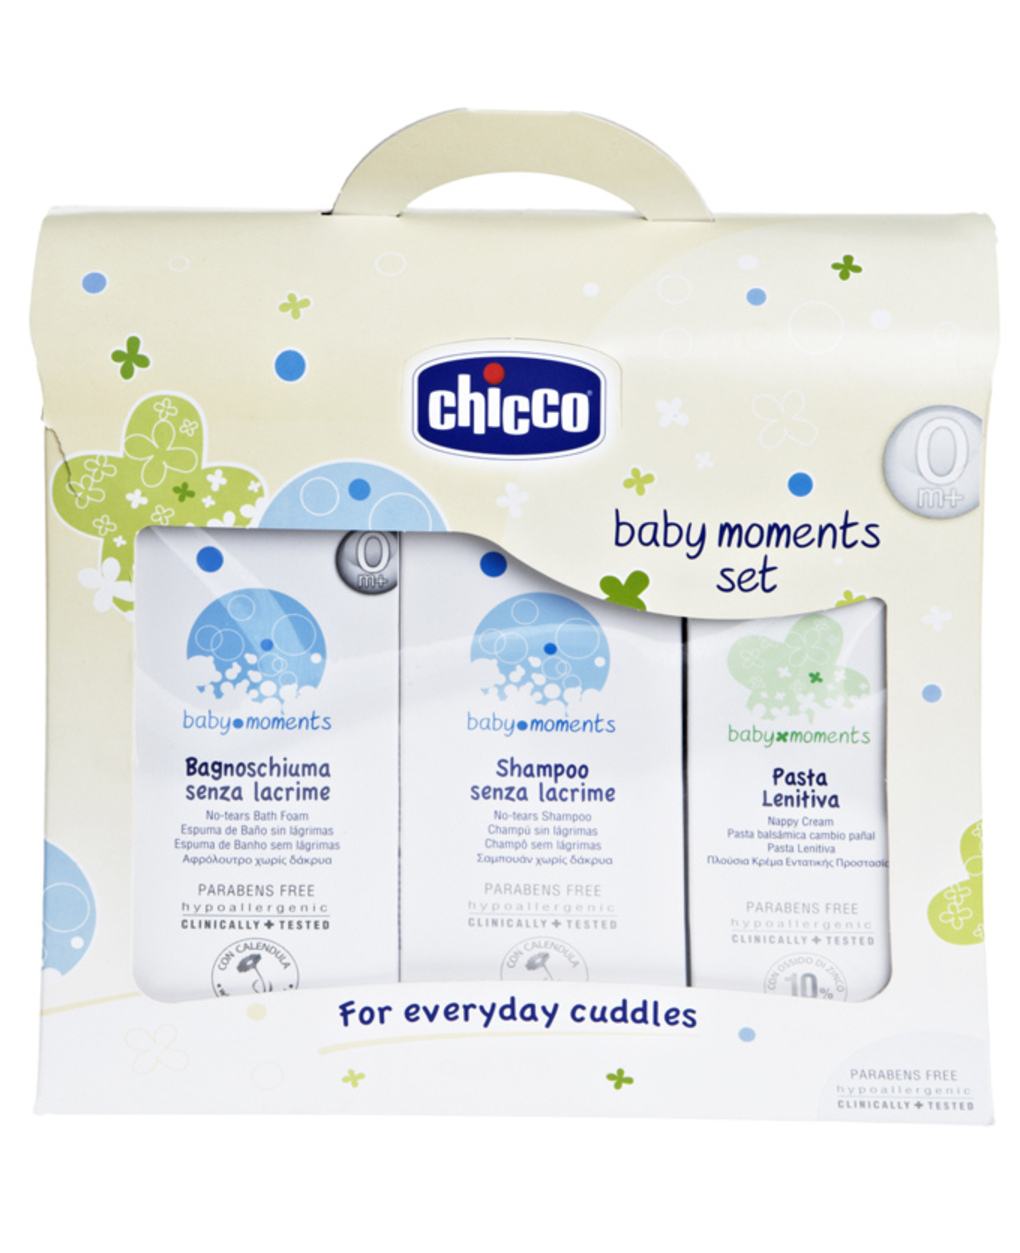 Set bagno baby moments chicco - Chicco